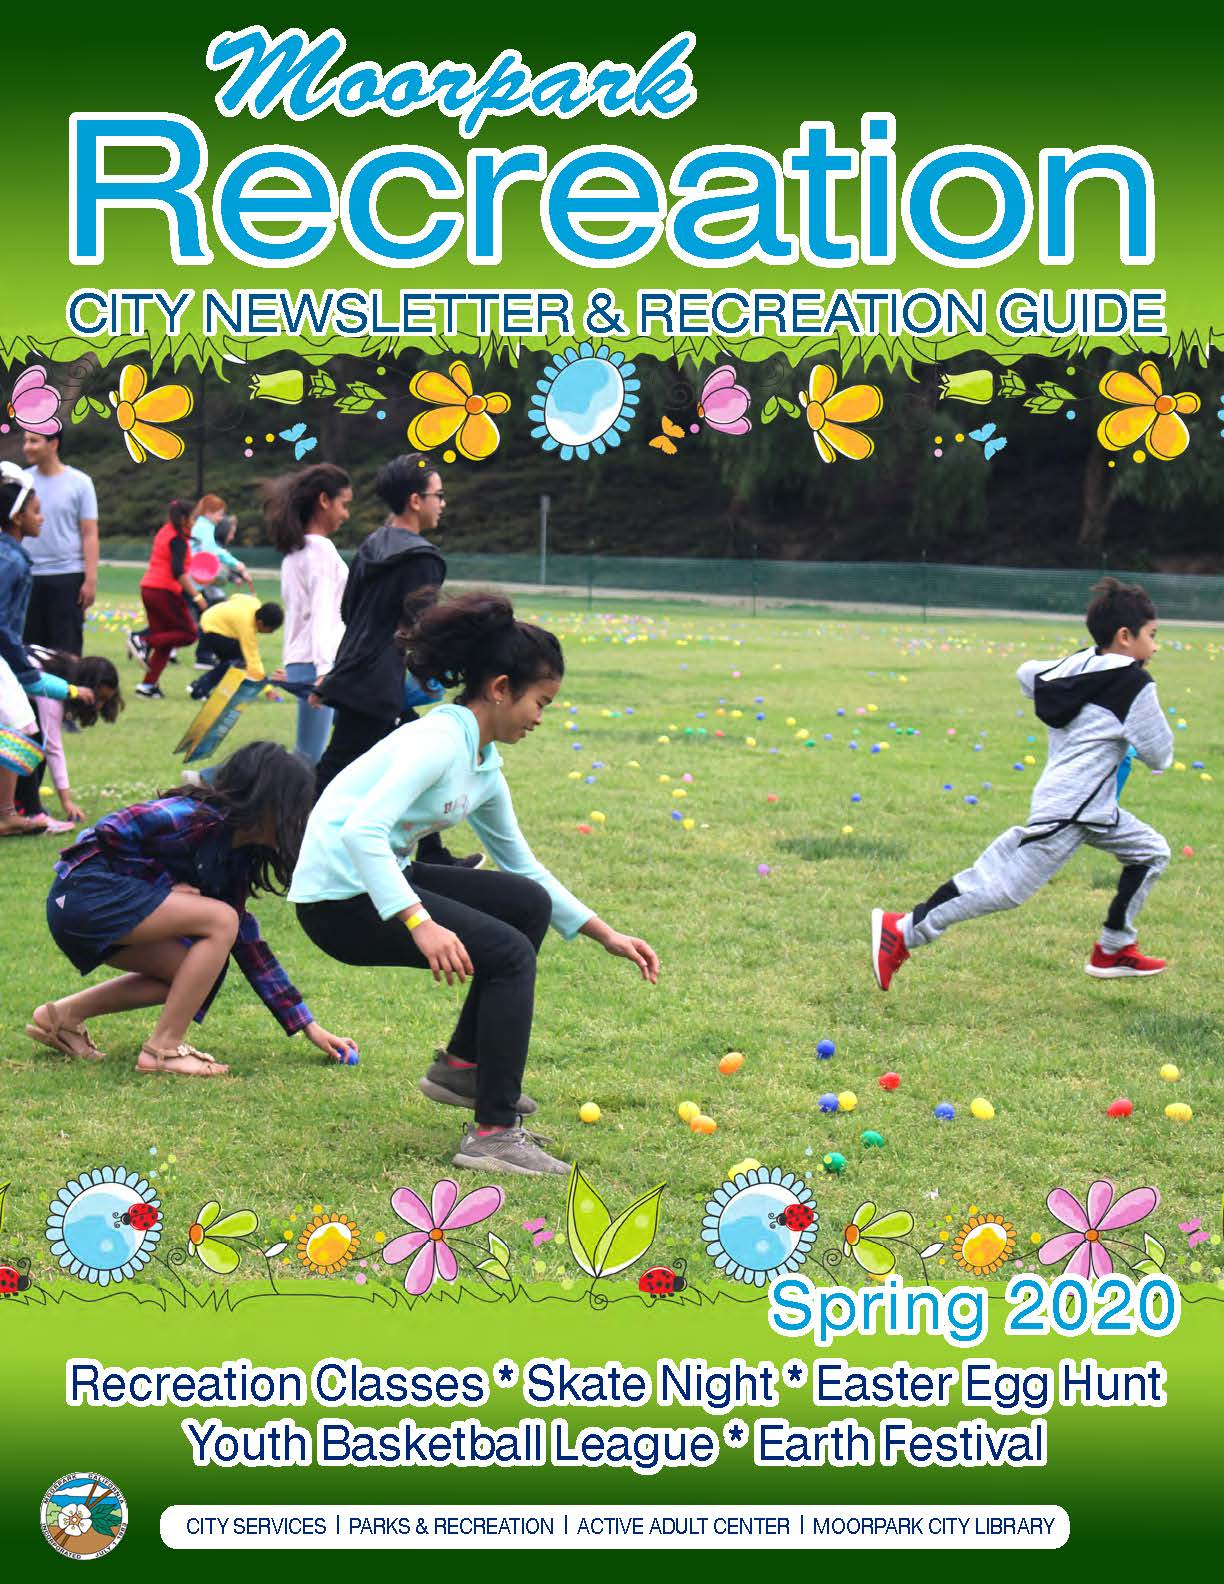 Spring 2019 Recreation Guide Opens in new window